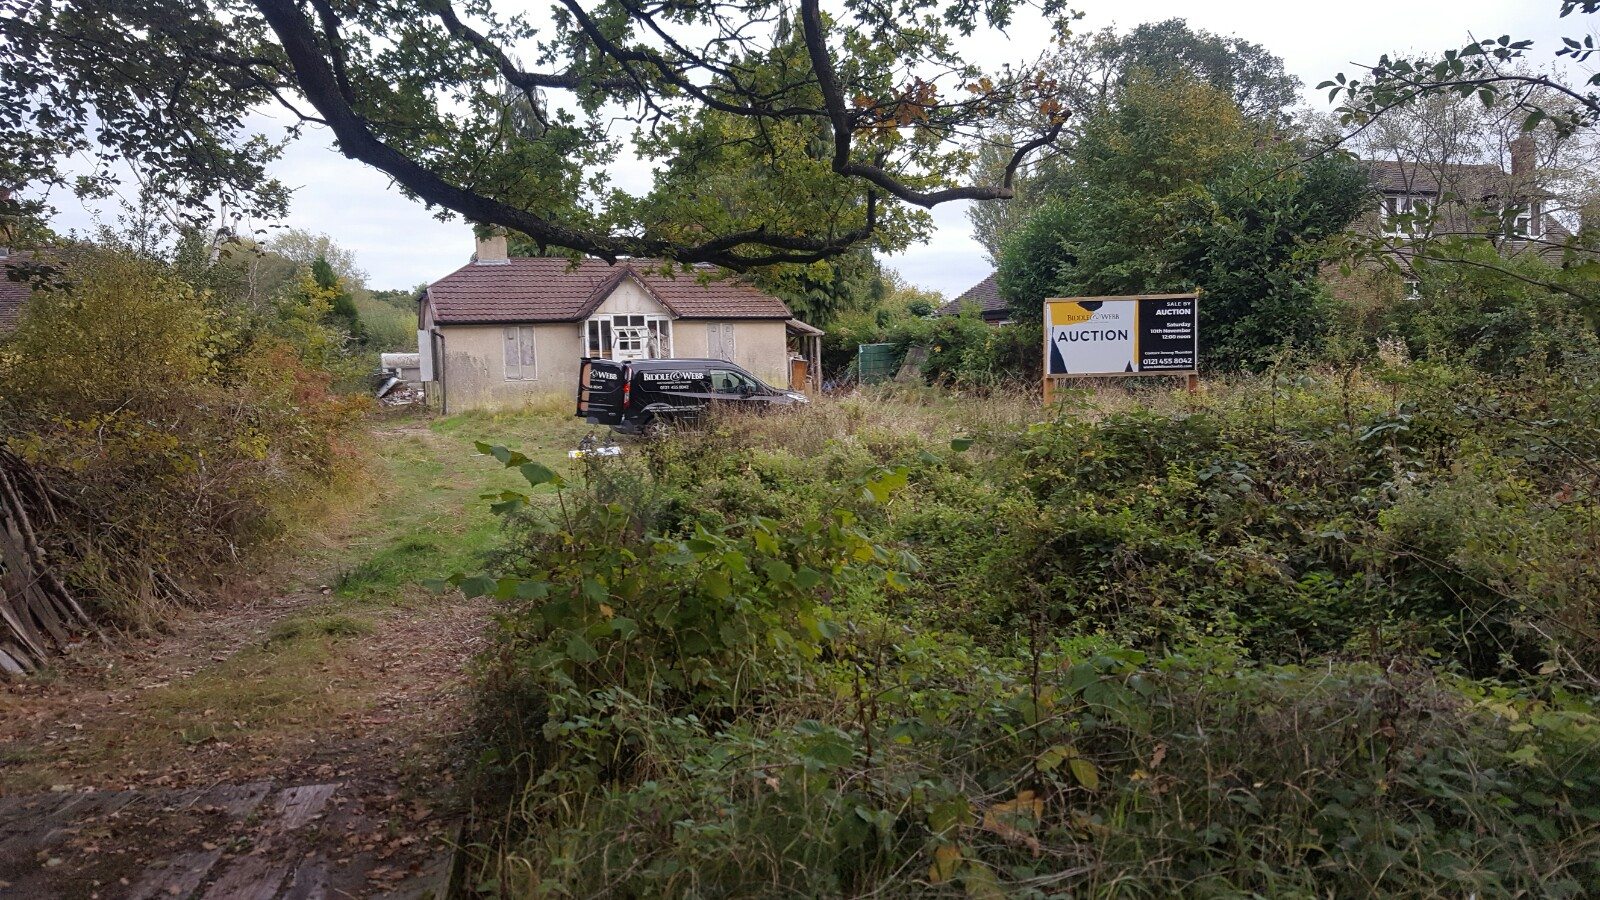 Lot 1 - To be sold by public auction on Saturday 10th November at 12noon. A development plot of freehold